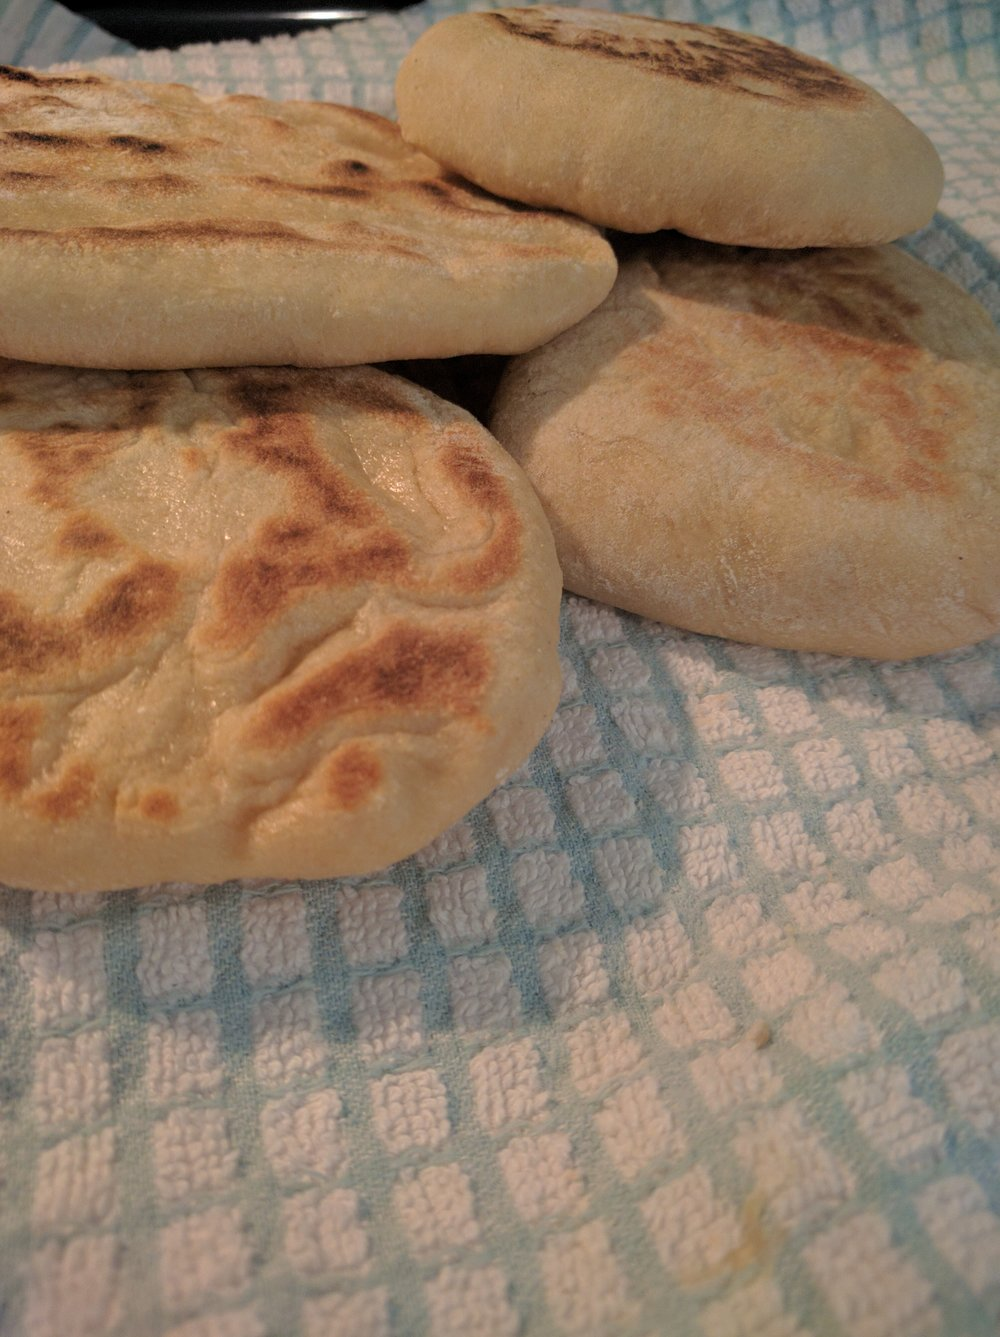 Some pitas turn out fluffier than others, but they all taste the same!